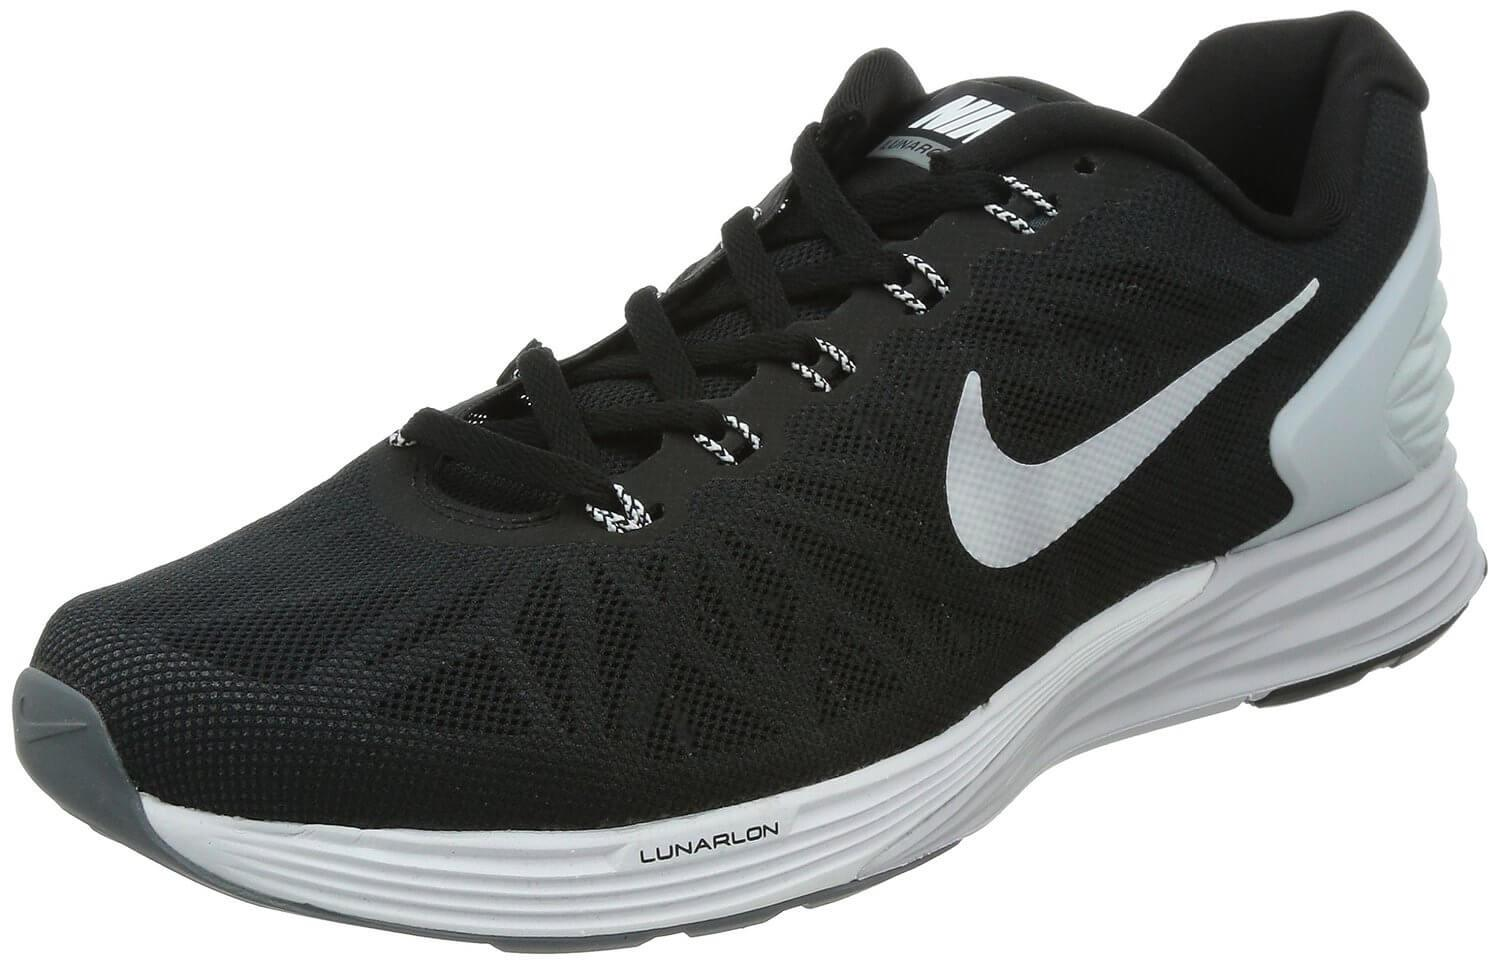 Nike LunarGlide 6 Reviewed - To Buy or Not in Mar 2019  18221d520ae6